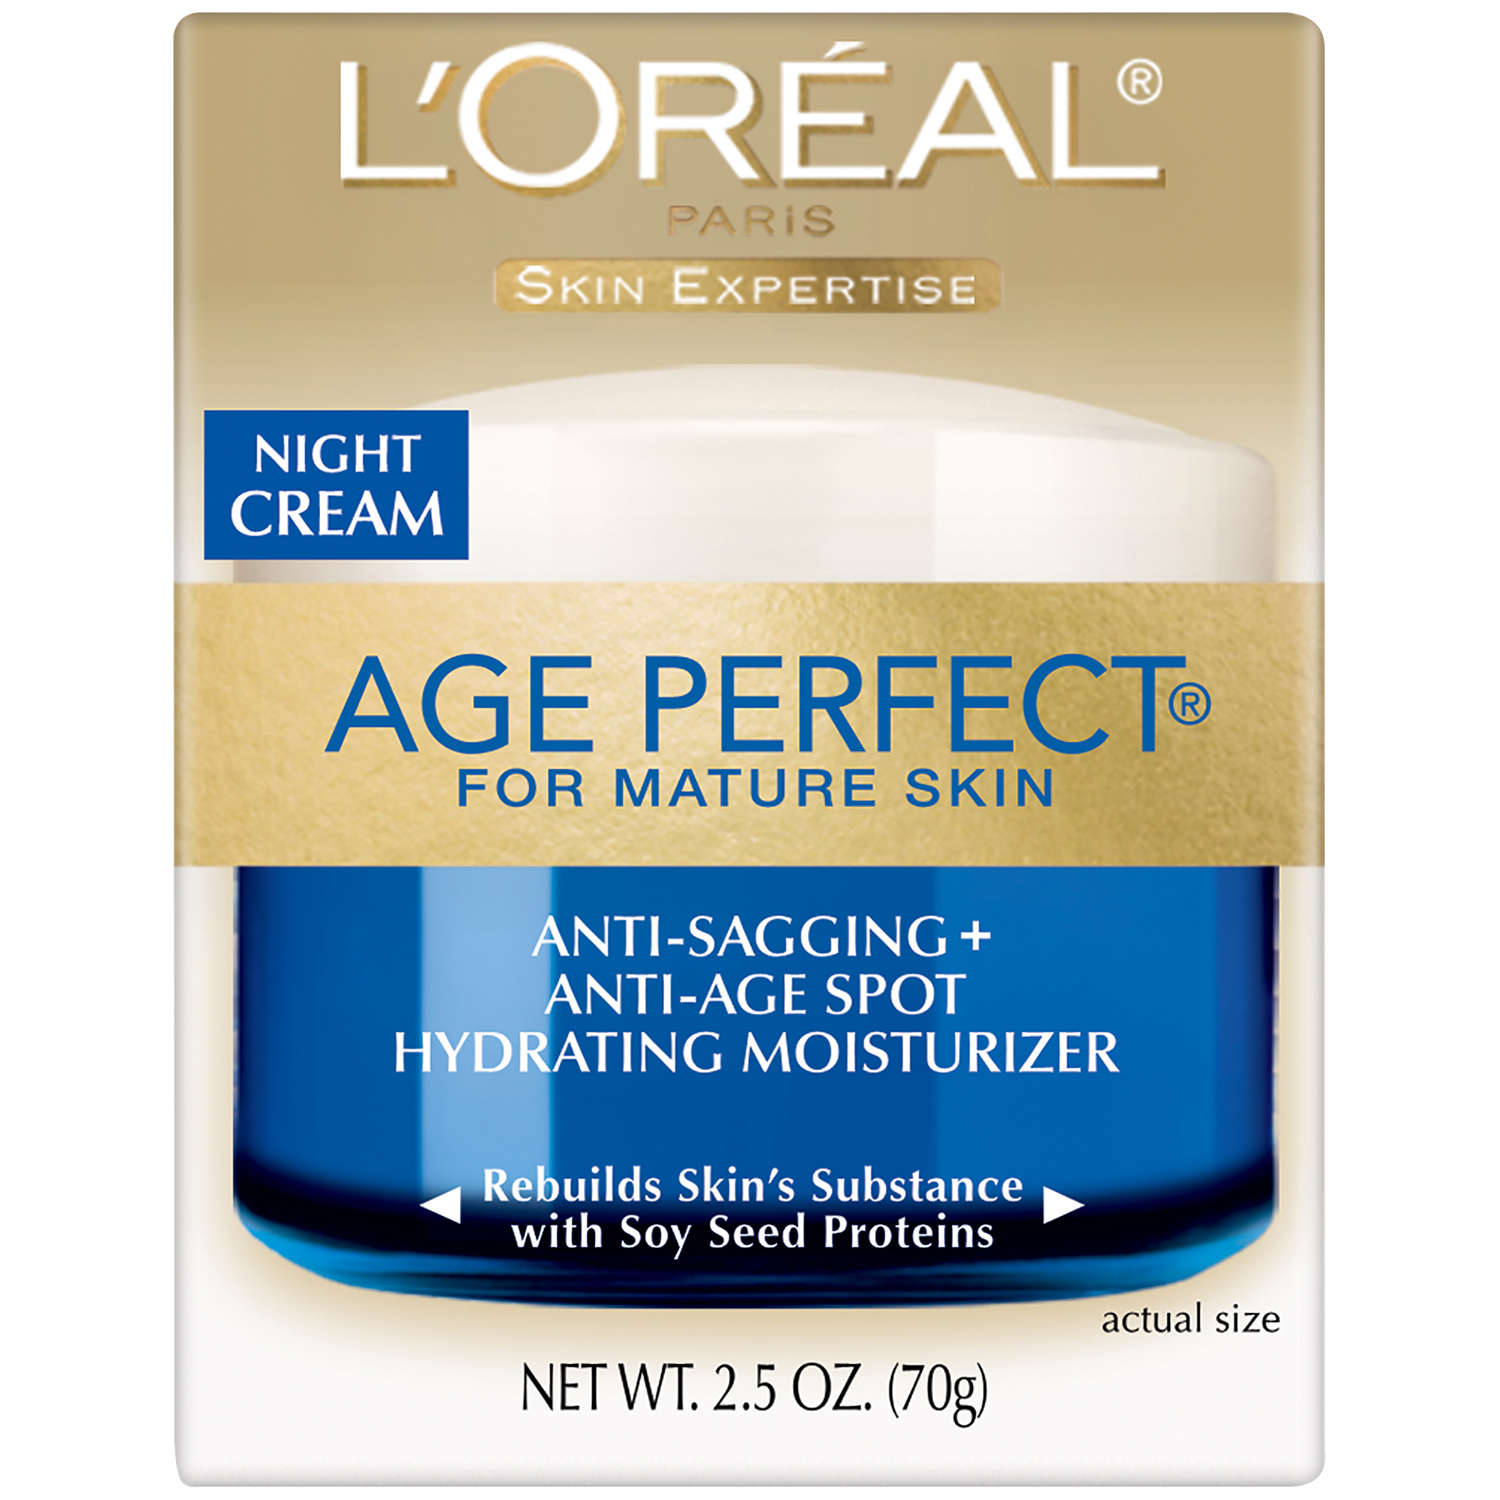 L'Oreal Paris Age Perfect Night Cream